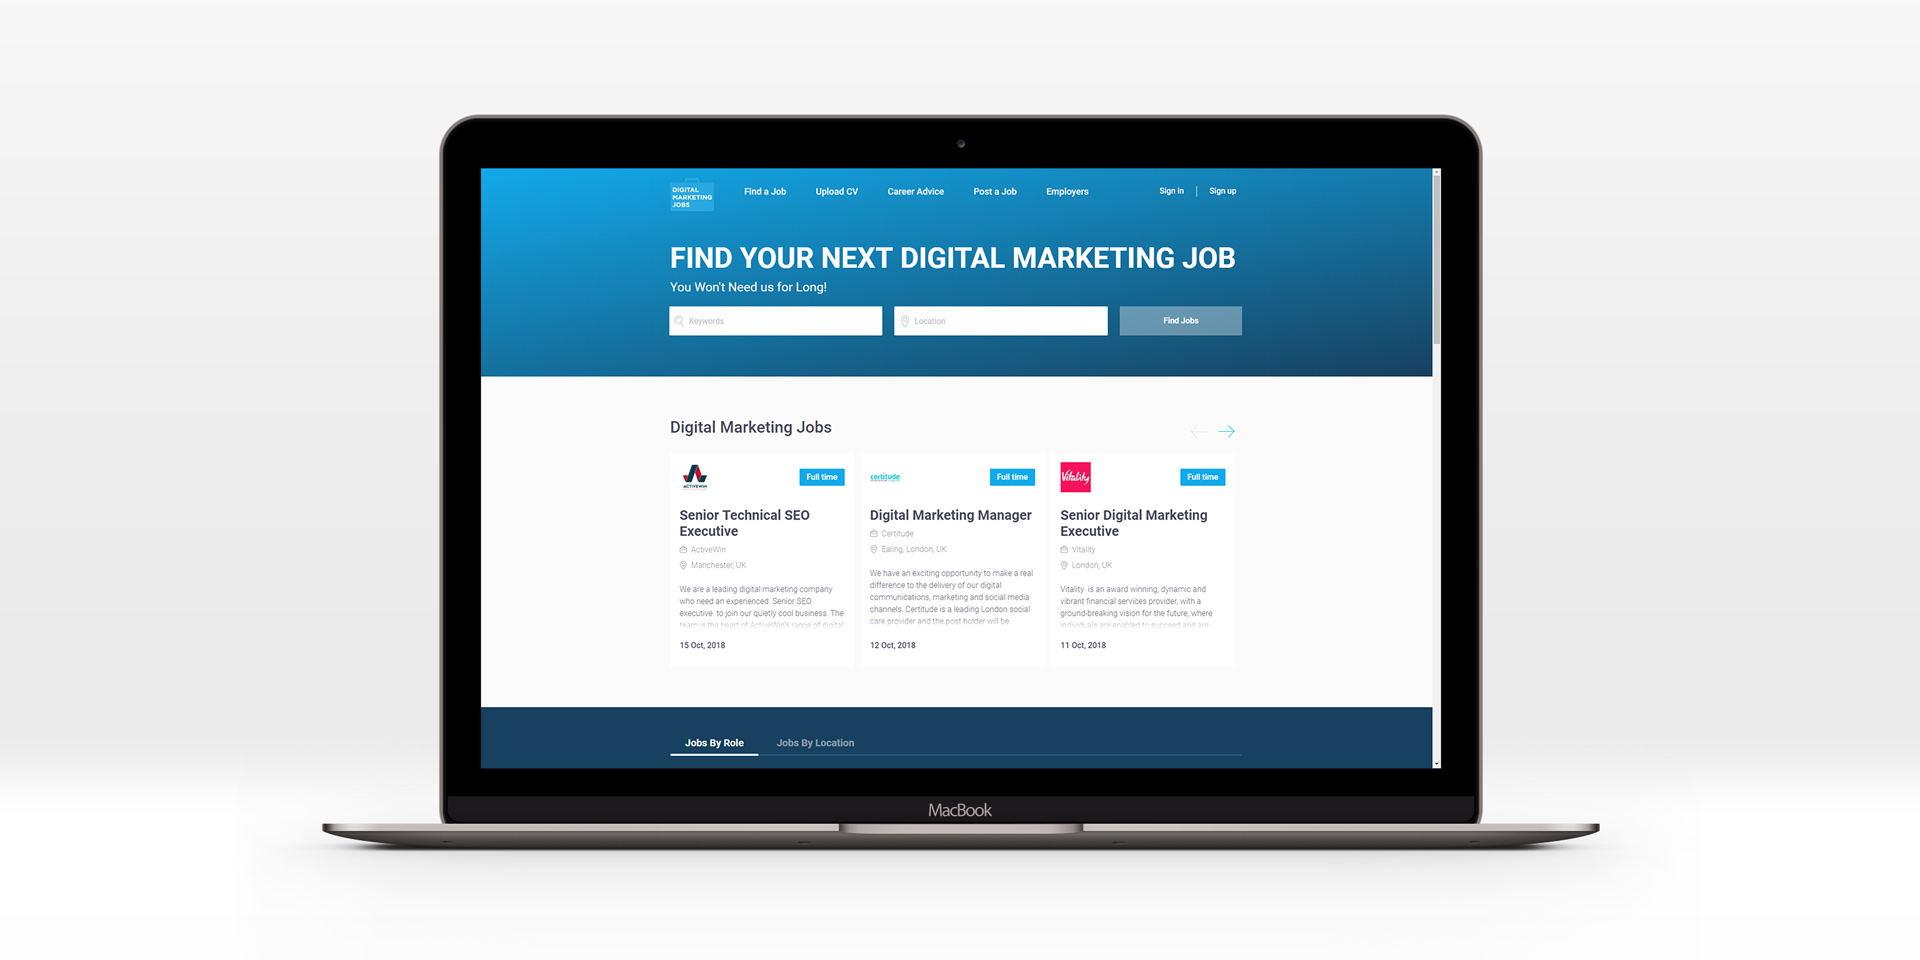 job board recruitment website design for Digital Marketing Jobs on a MacBook